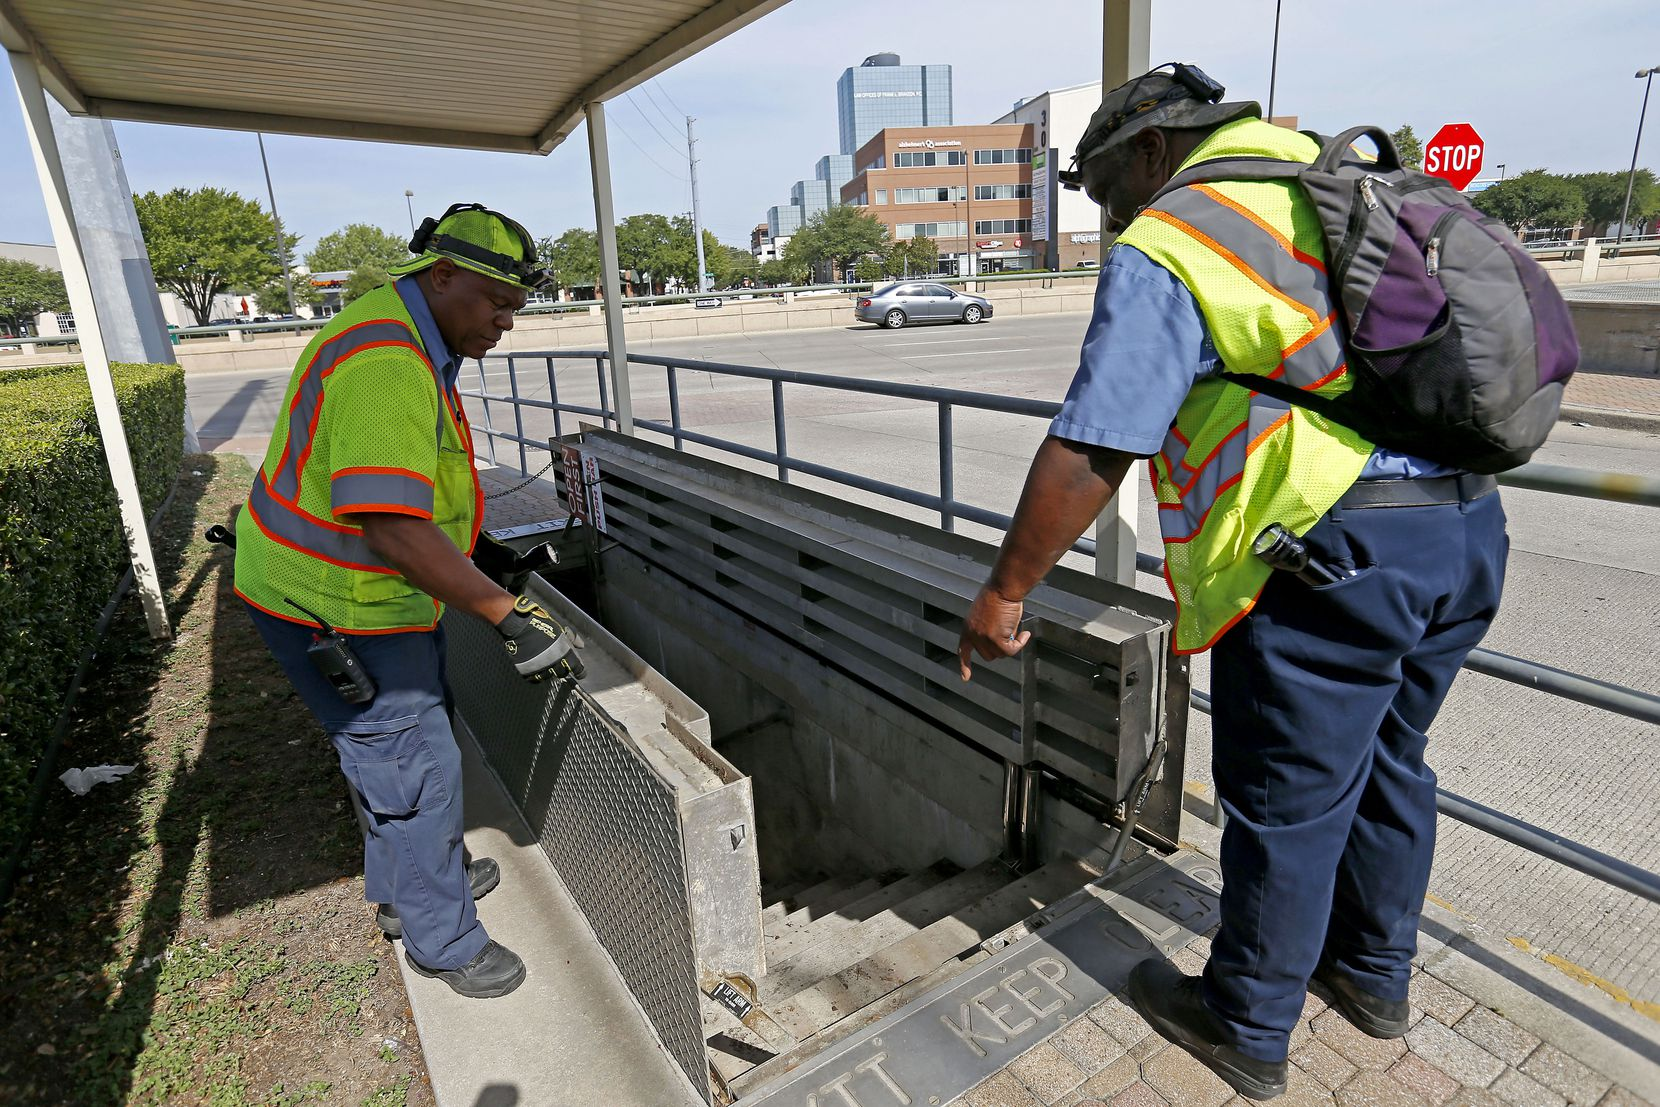 Pedestrians passing over steel plates in the sidewalk along Willis Avenue at Central Expressway might not realize that they're actually trap doors leading to a subterranean section of DART's light rail system only used by maintenance crews and as an evacuation route in case of emergency. DART mechanics Amos Hargrove (left) and Bill Lakes shut the doors after giving DMN real estate editor Steve Brown and two photographers a tour.